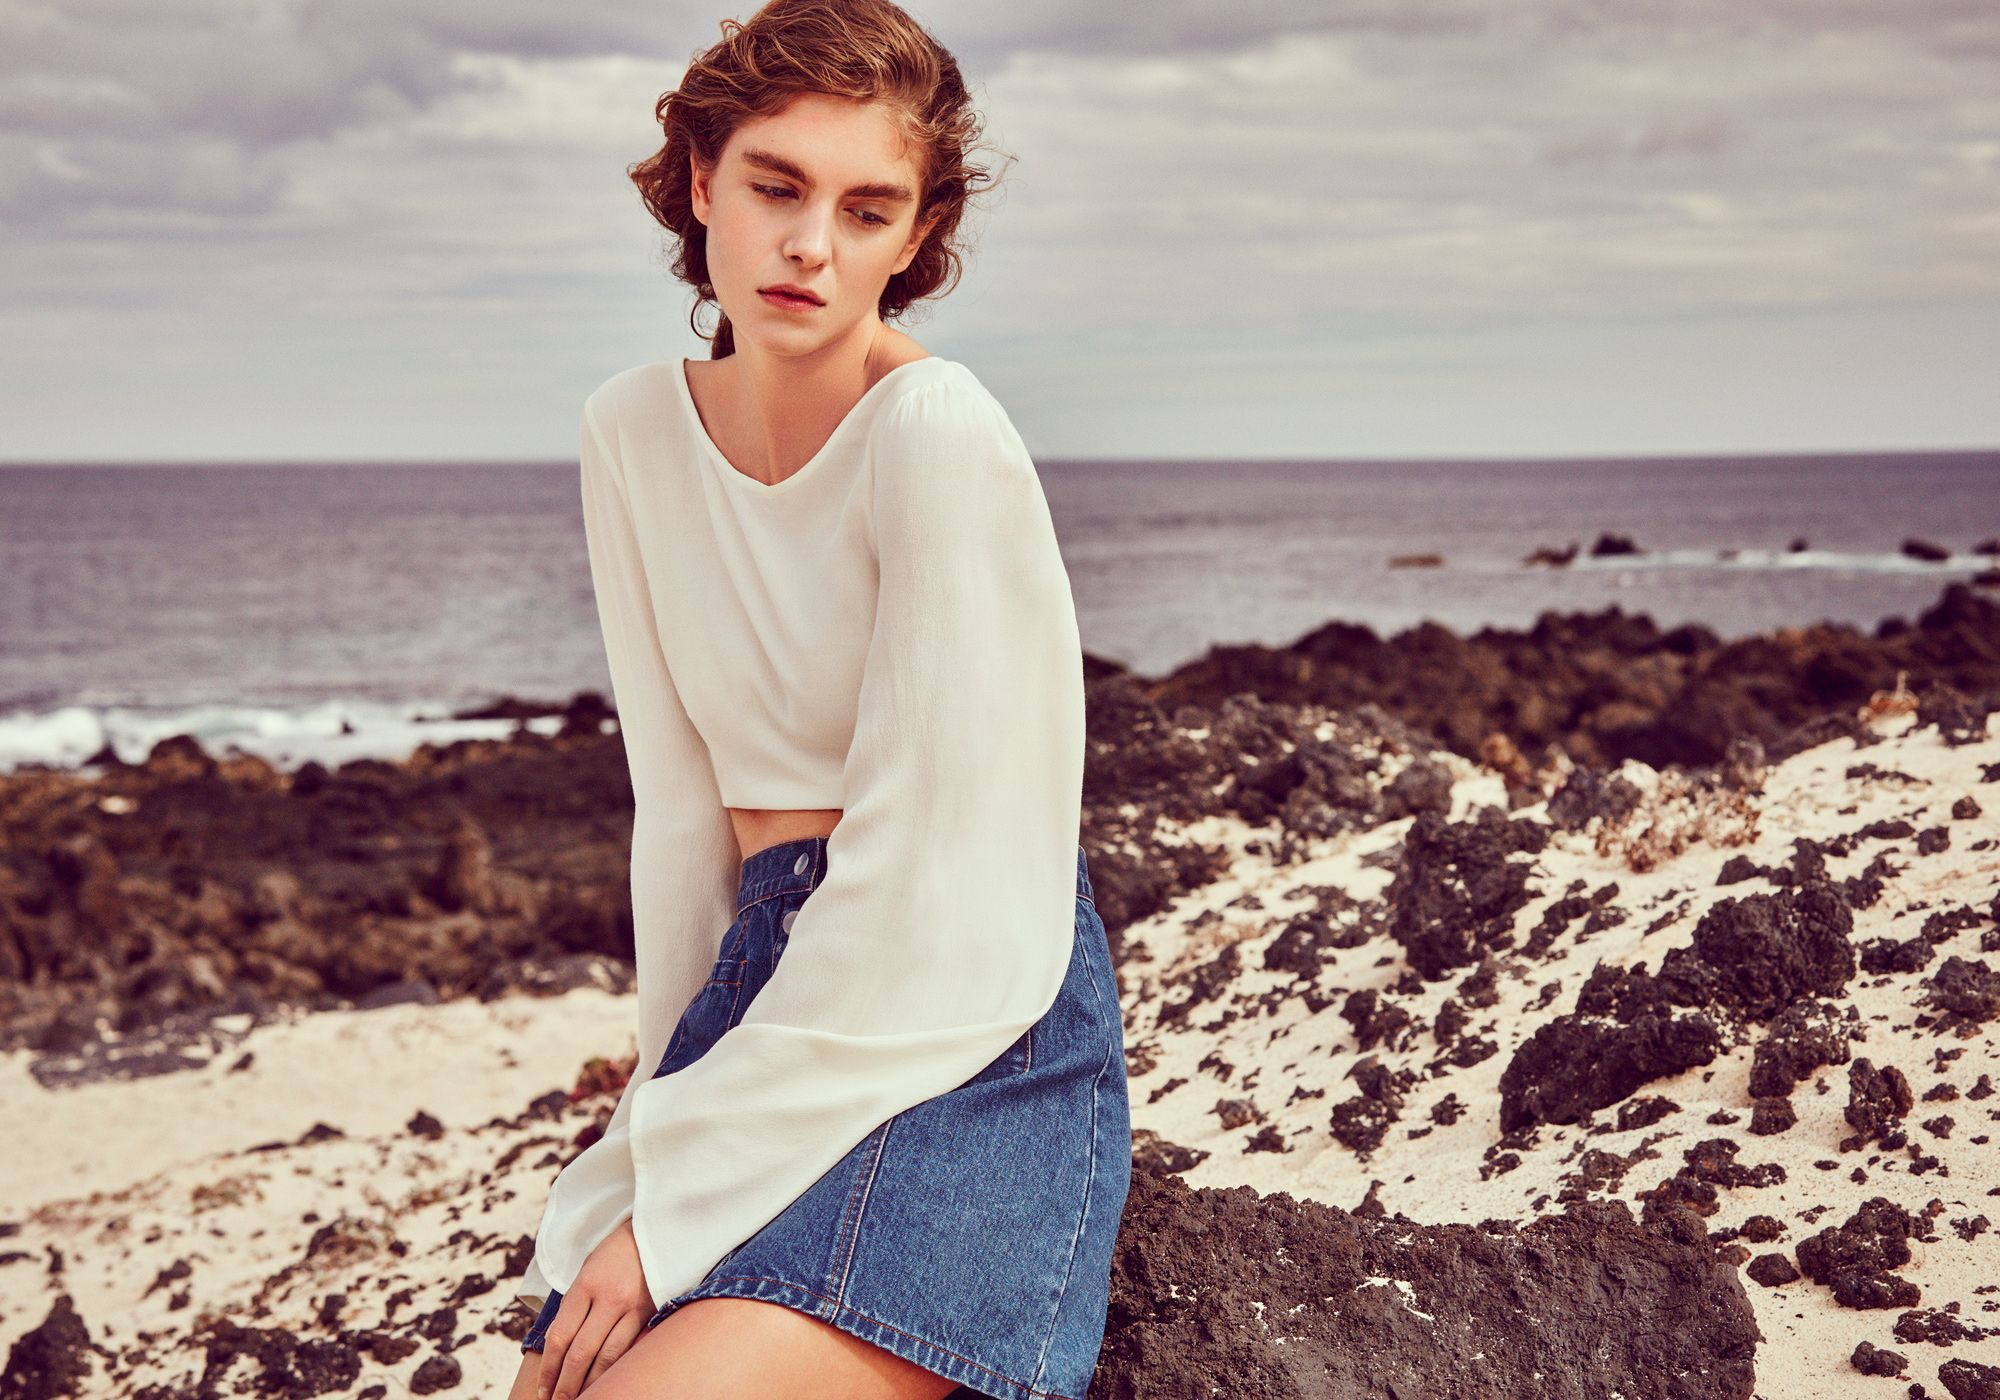 The New Bohemia with raw cotton bell sleeves and 70's silhouettes making a come back.